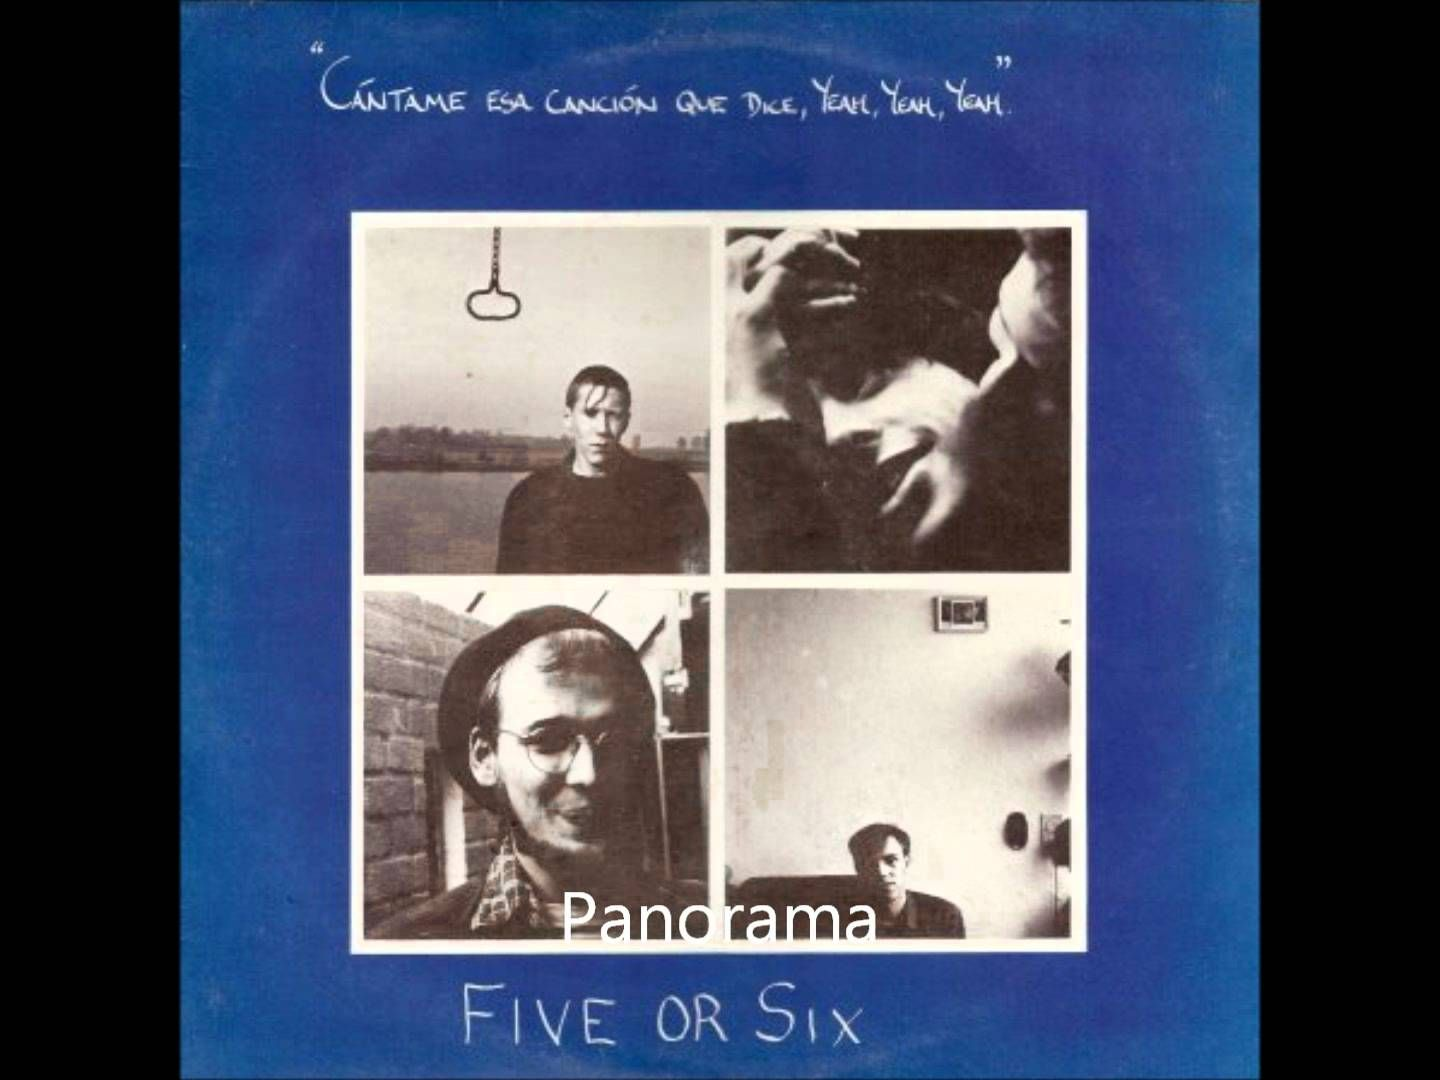 Five or Six - Lost Cause (Cantame Esa Cancion Que Dice, Yeah Yeah Yeah, 1982)